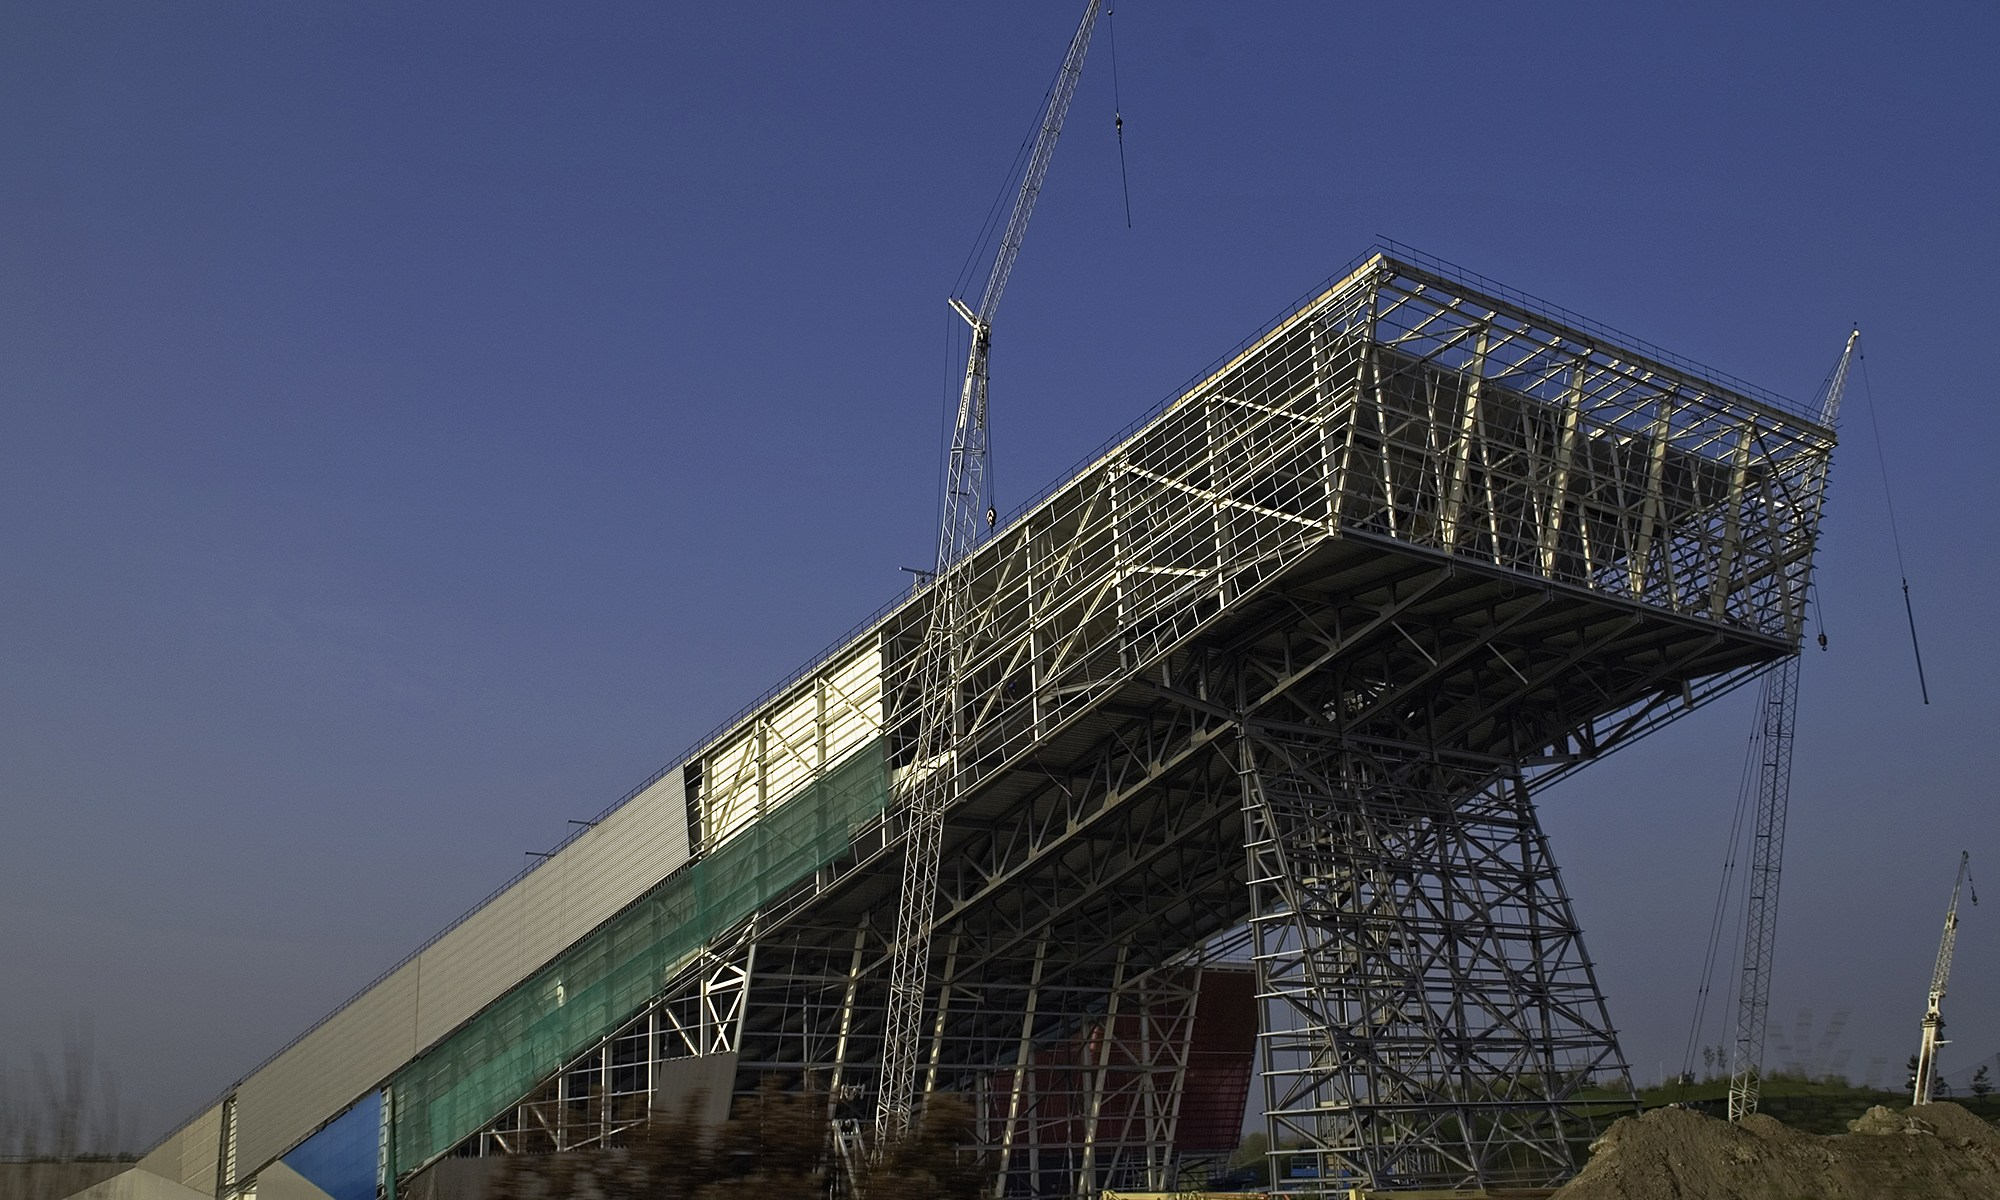 Construction of the Chill Factore Ski Slope